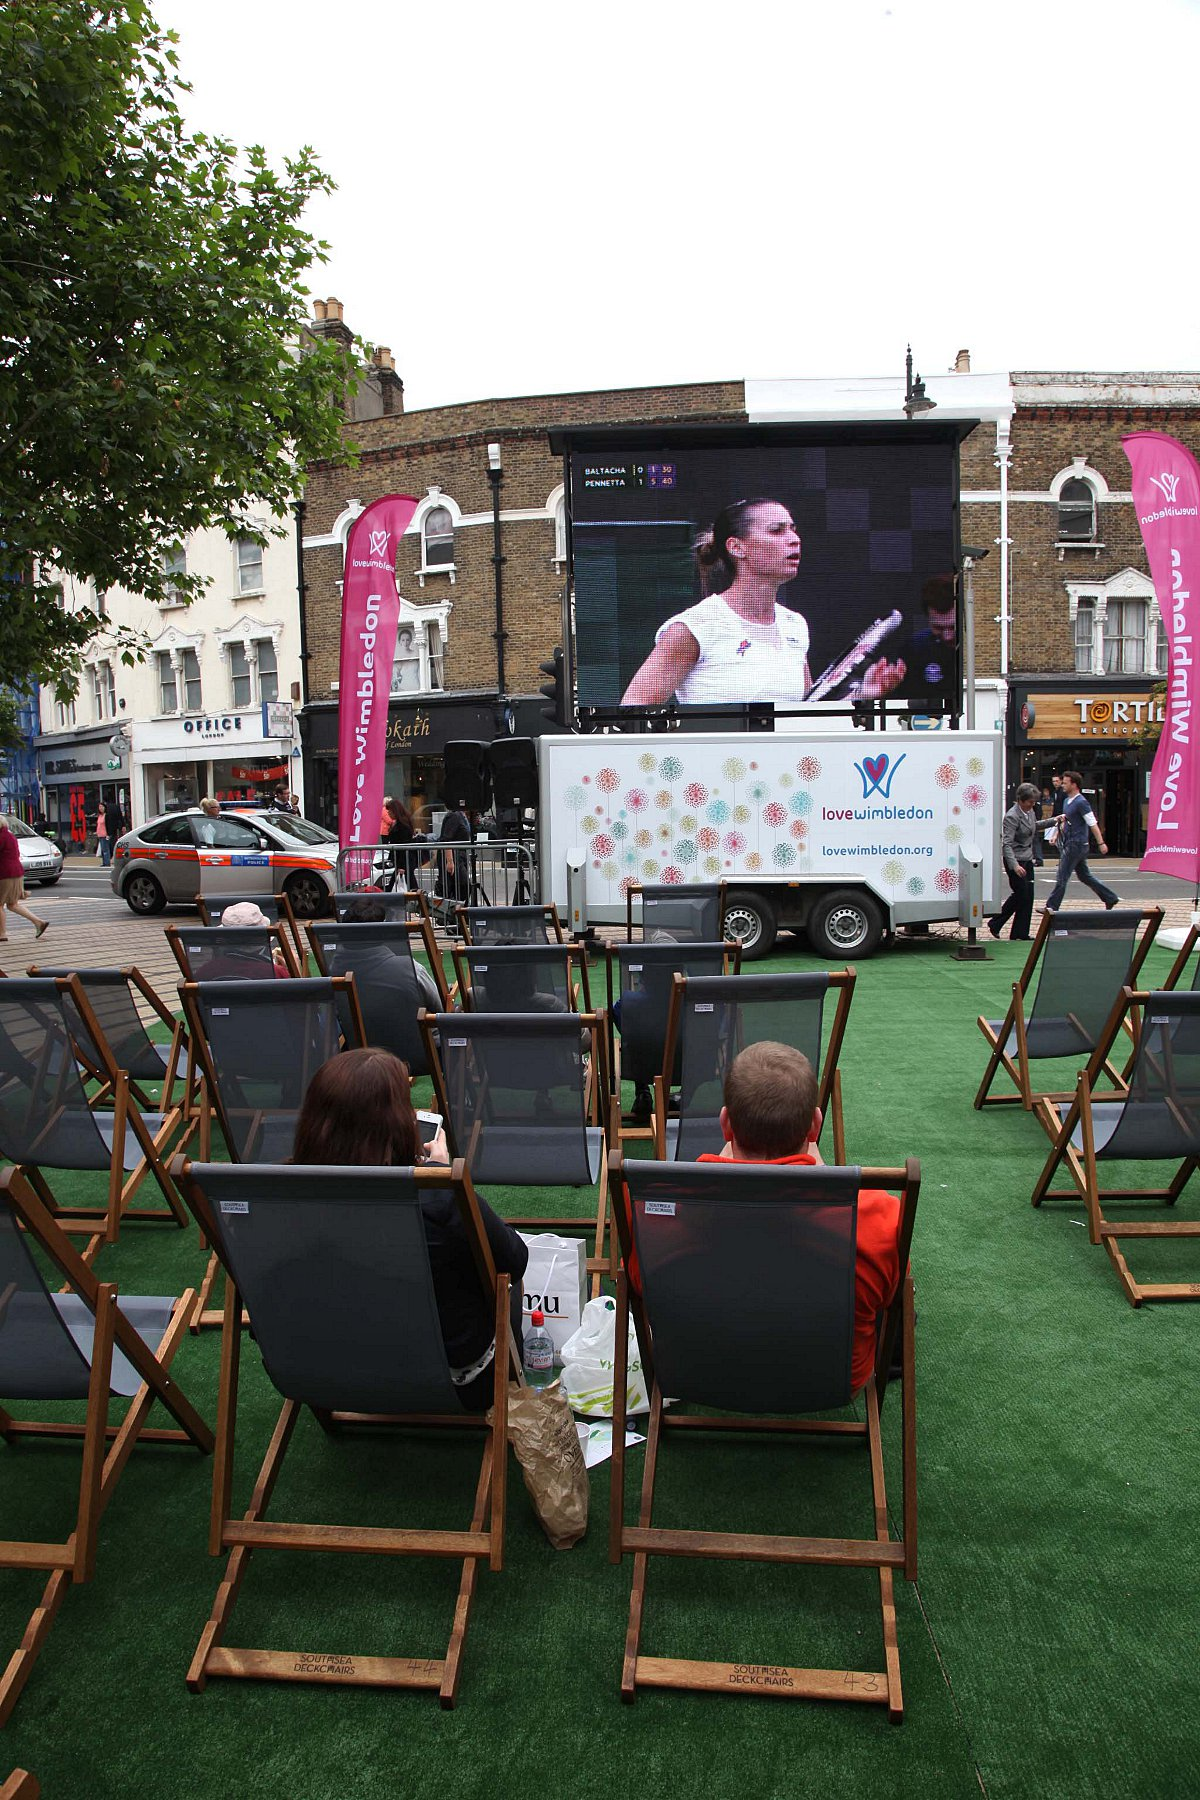 Wimbledon tennis was aired in the Piazza last year